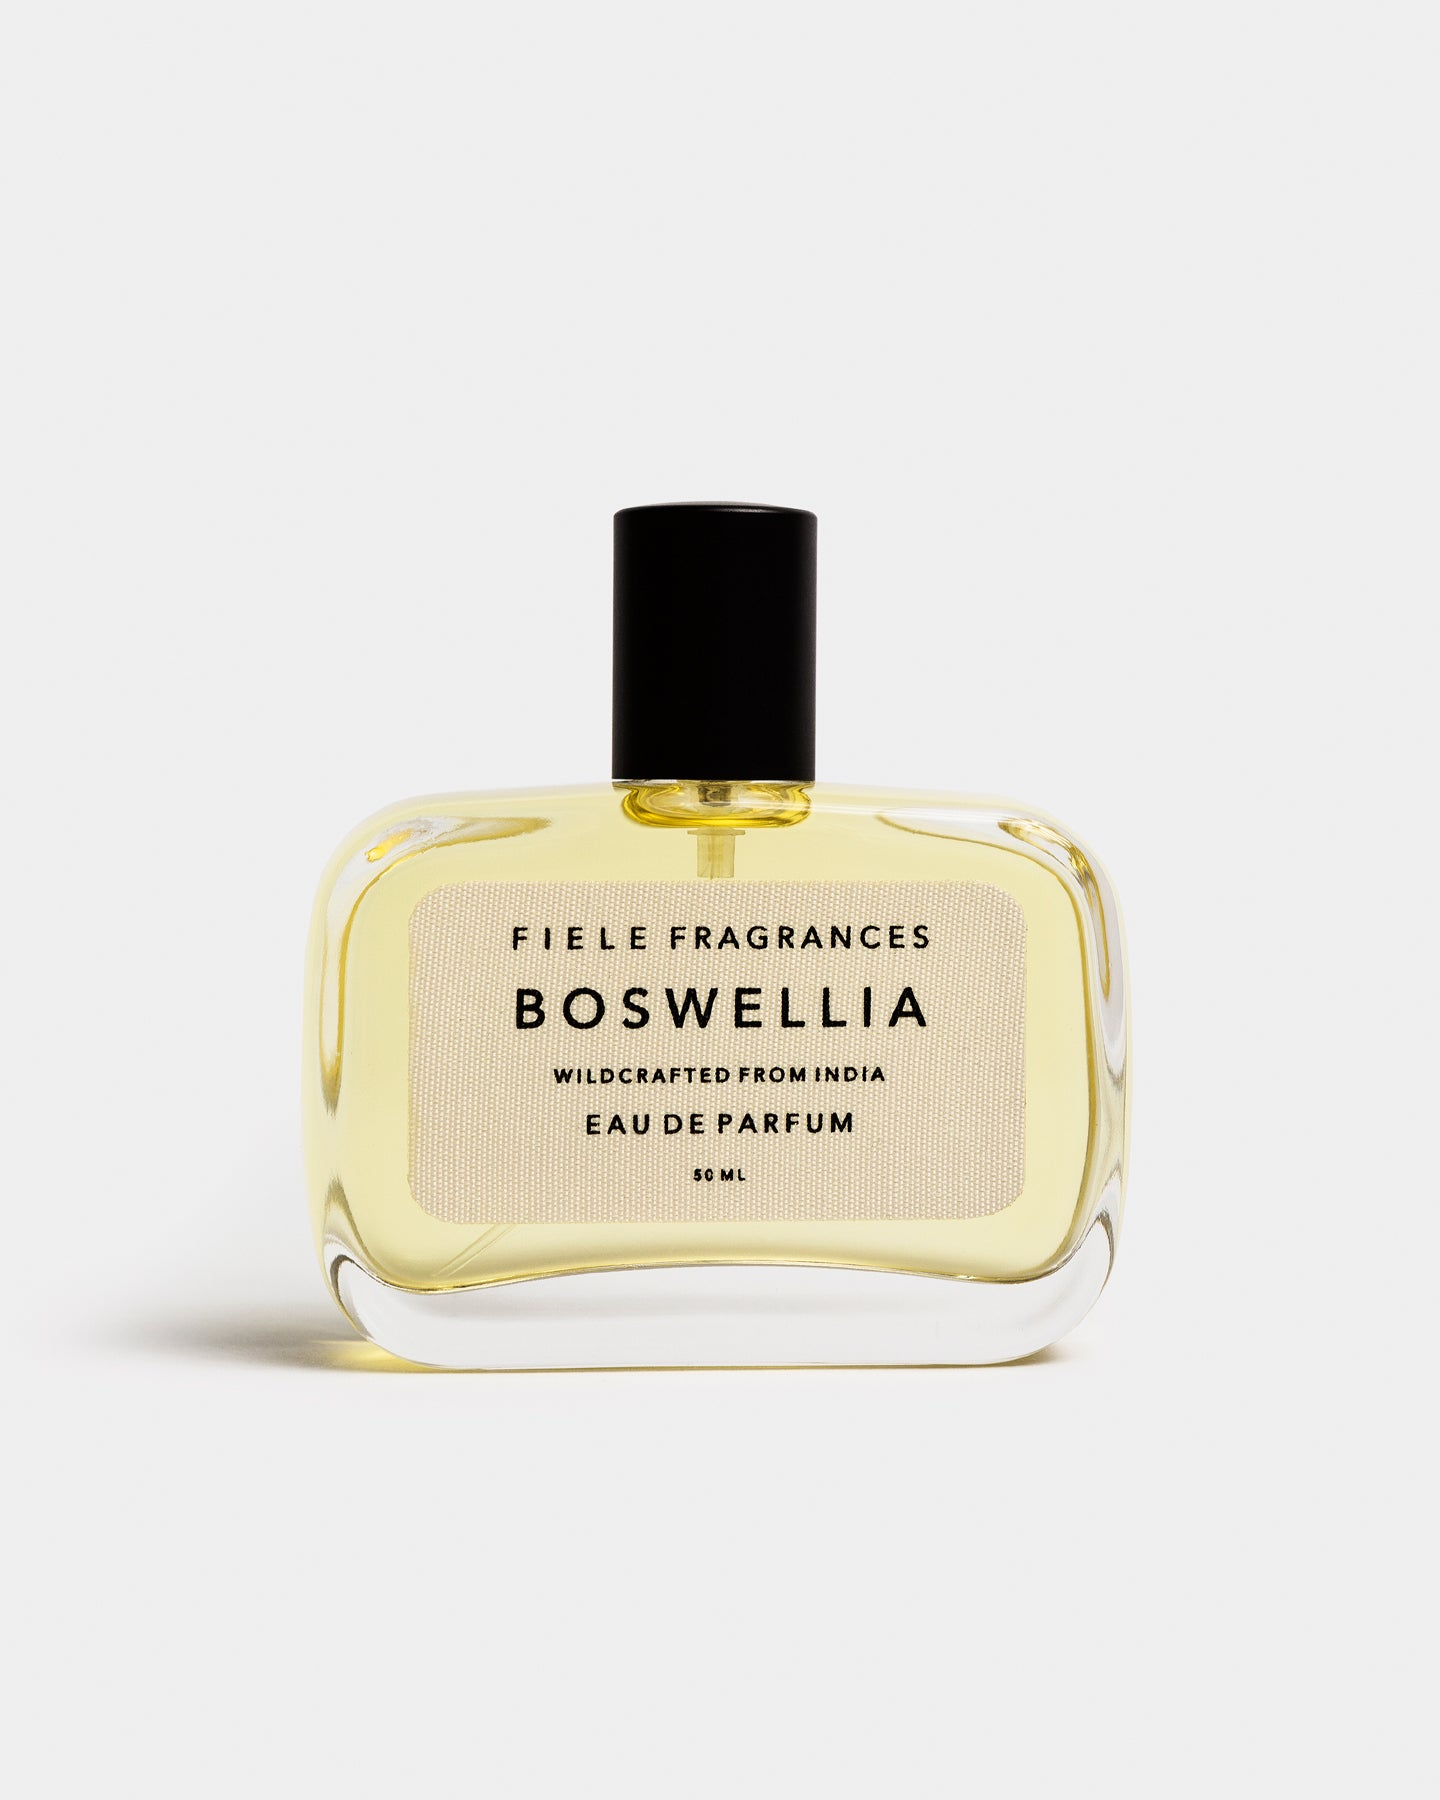 Fiele Fragrances - Boswellia